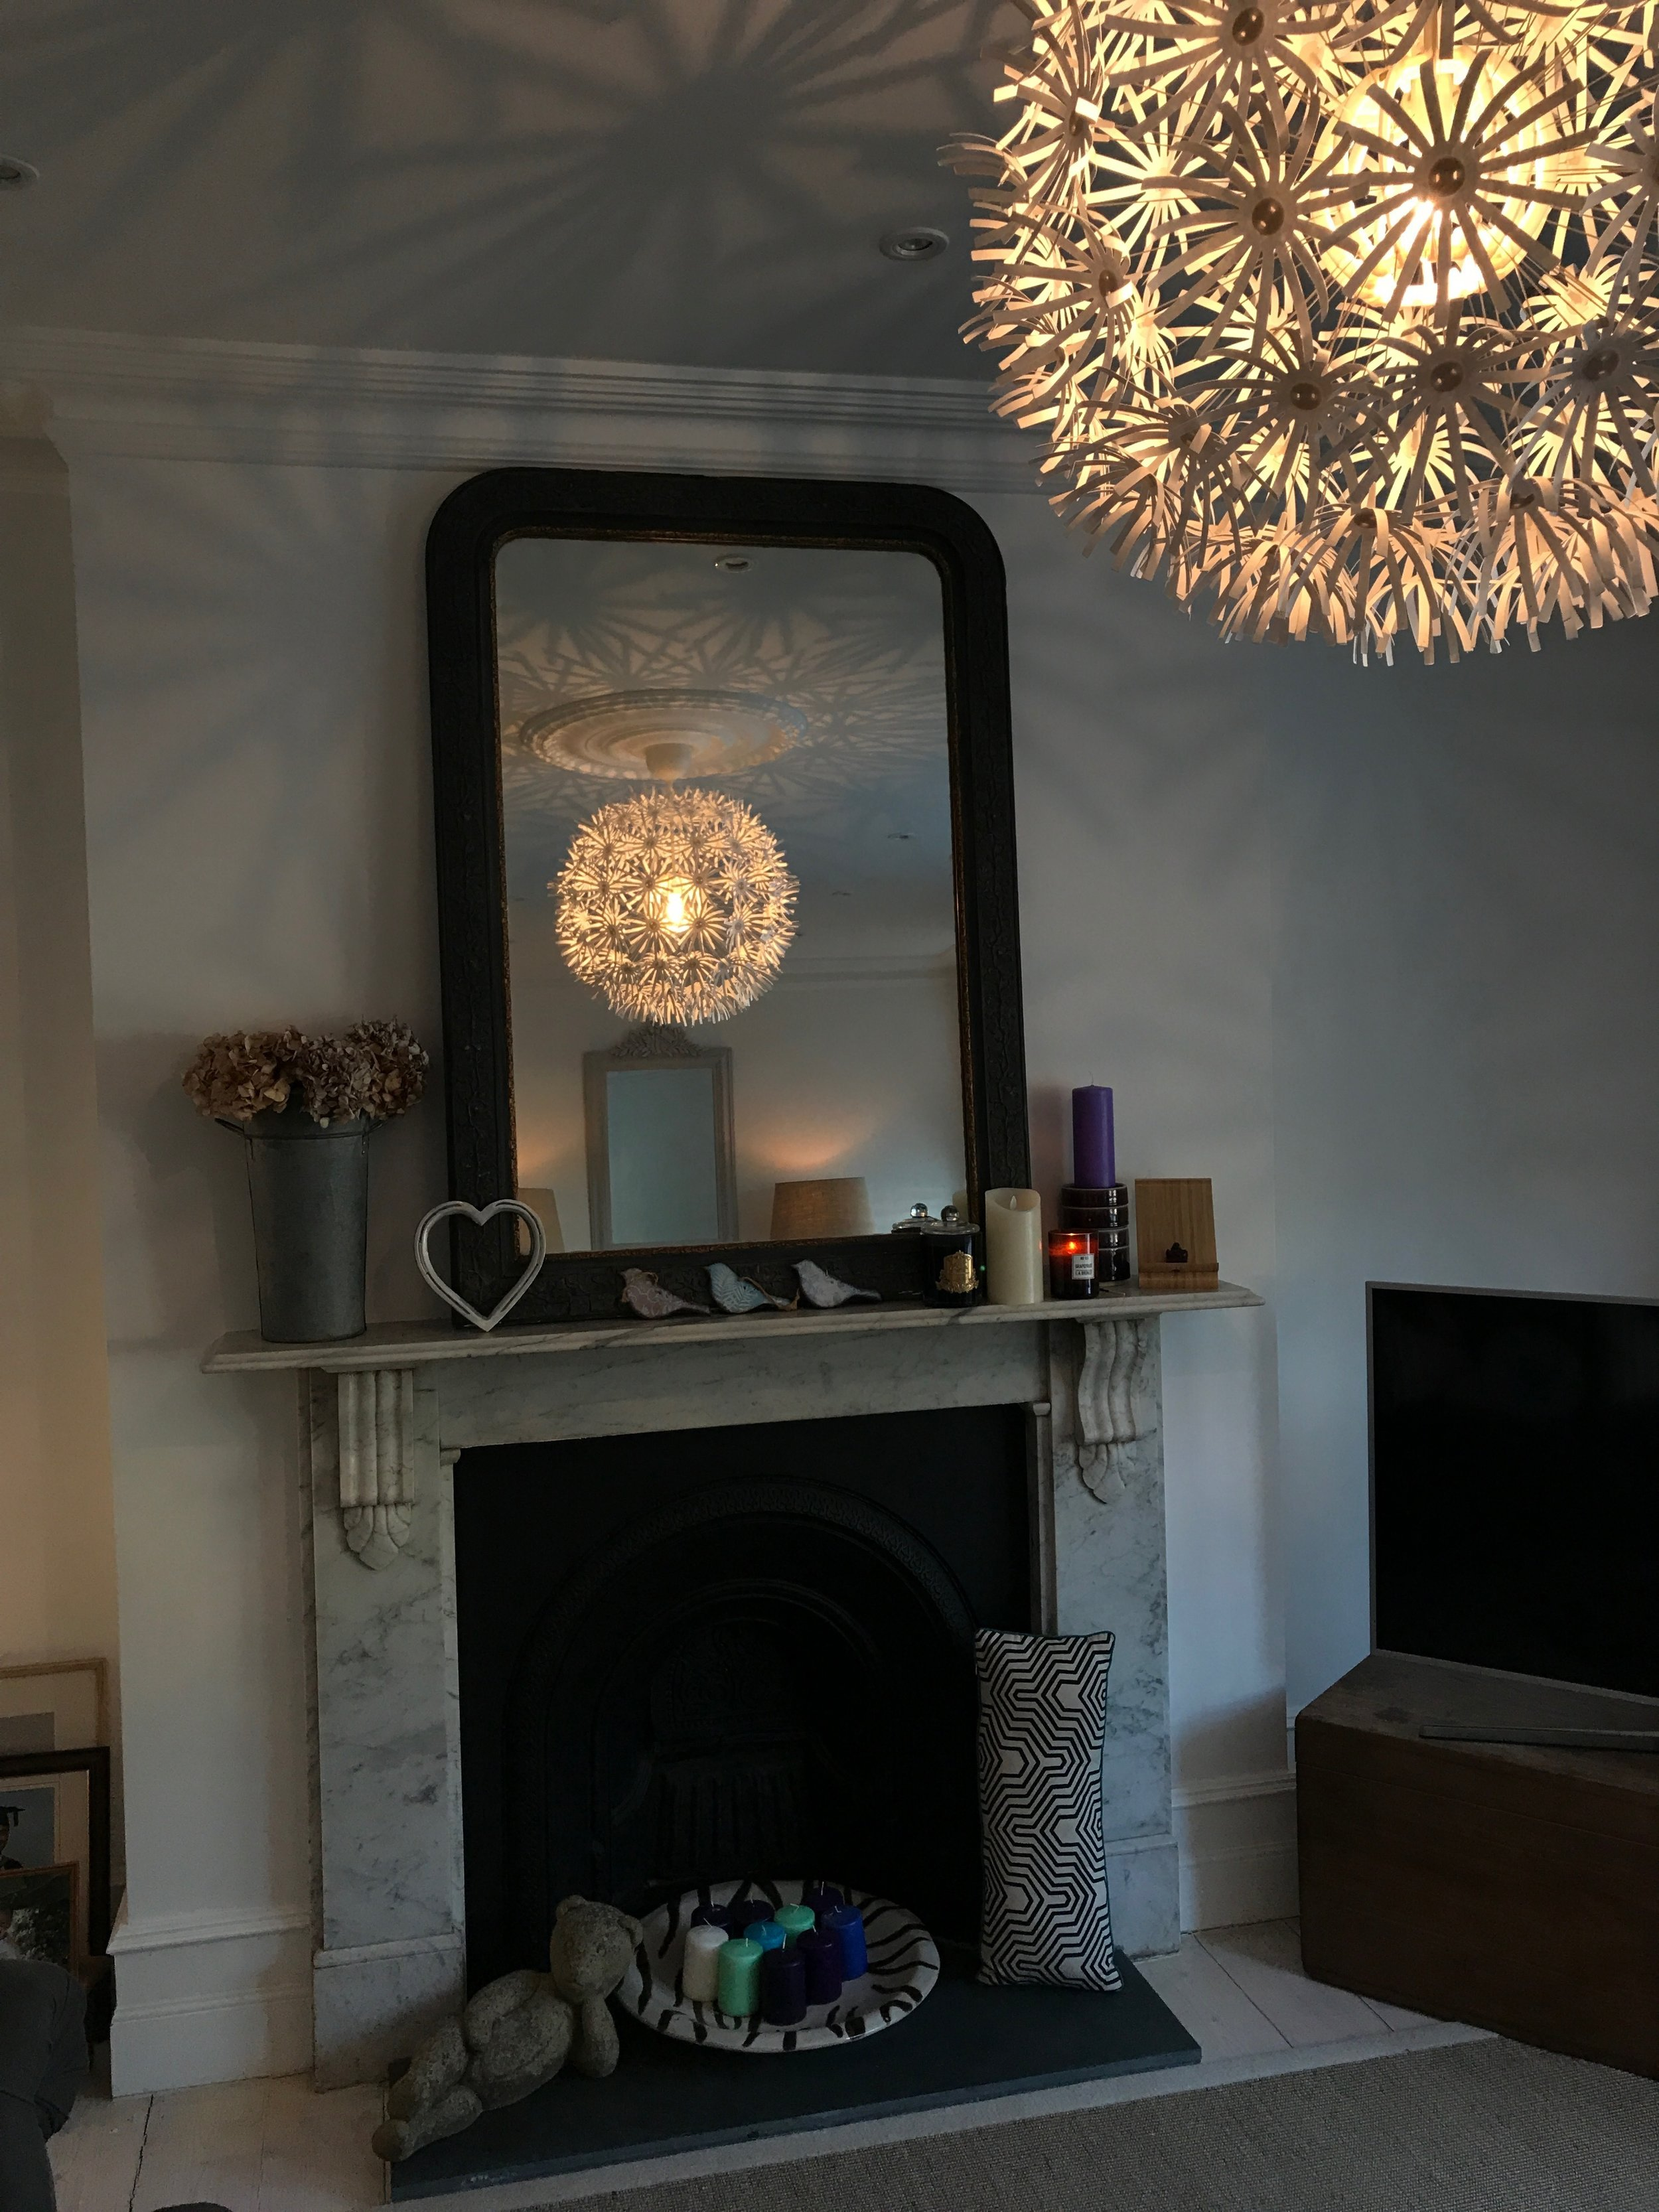 Bespoke - We love making unique pieces and welcome enquires for commissioned items. This is a personalised service that runs alongside our interior consultancy if you're looking for something original for your property. Our talent is in lifestyle items.We have experience in a wide range of bespoke features including, Invisible rooms, glass staircases, hand crafted lighting, antique fireplaces, personalised prints and artwork to a whole array of soft furnishings.We can also source antiques pieces and overseas artefacts from India, Malaysia and Morocco.Find more info coming soon to our lifestyle pages for inspiration on the Bespoke items we are developing at the moment. Some will be available as limited editions to order direct from us.If you have an idea or are looking for a truly unique design we would love to help.Consultation by appointment.